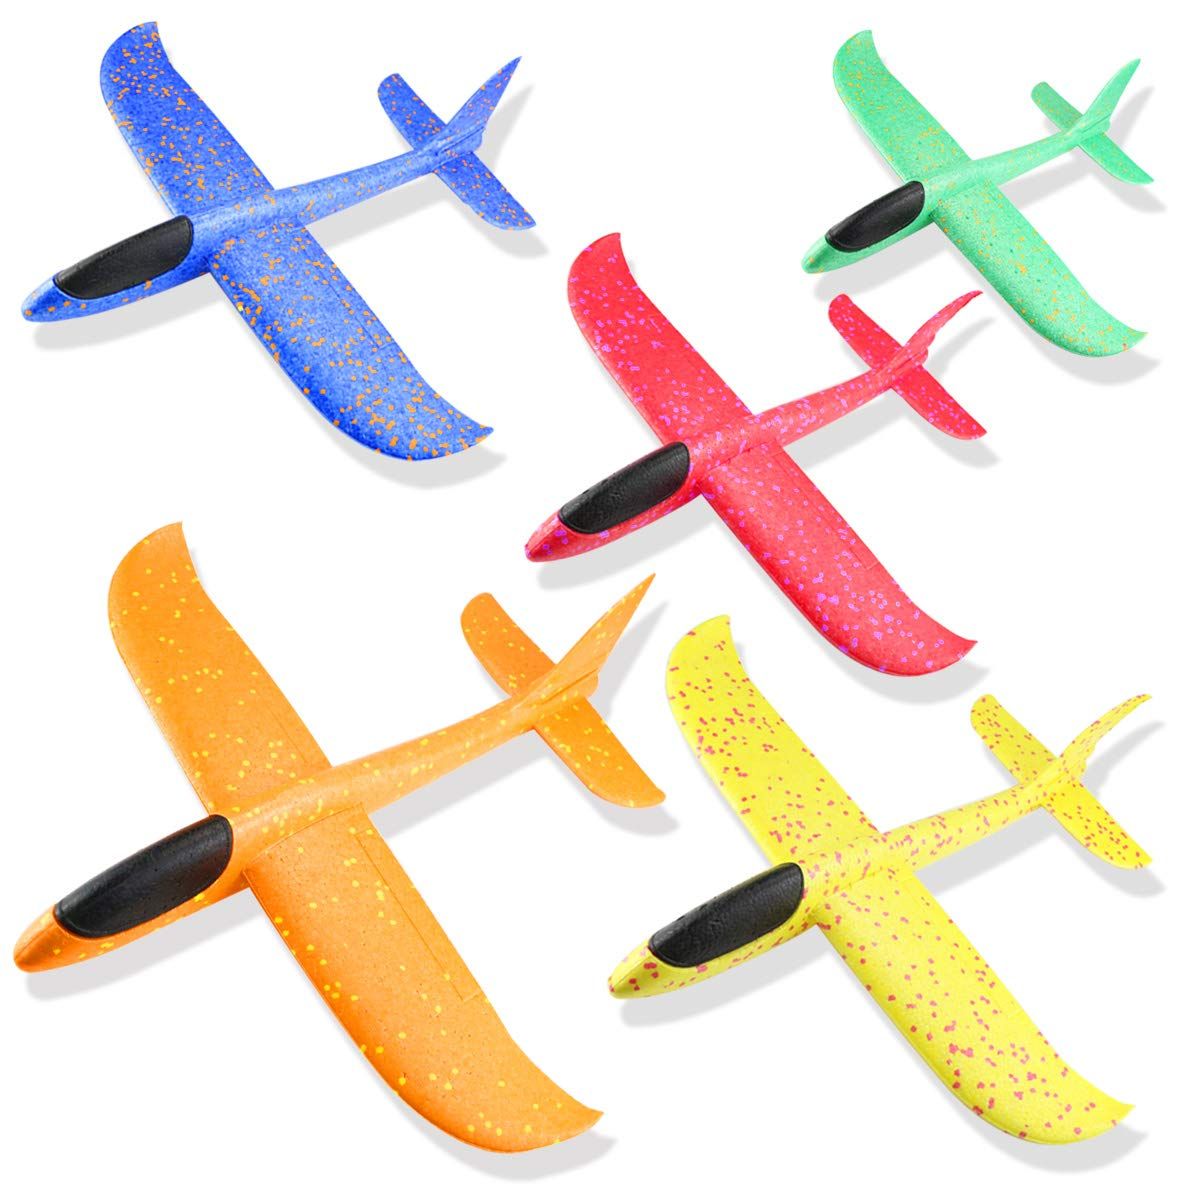 Weoxpr 5 Pack 18.3inch Multicolor Airplane Toy, Jumbo Manual Throwing Foam Plane, Large Glider Planes, Fun Airplane Model, Flying Aircraft for Outdoor Sport Game, Birthday Party Favors, Carnival Prize by Weoxpr